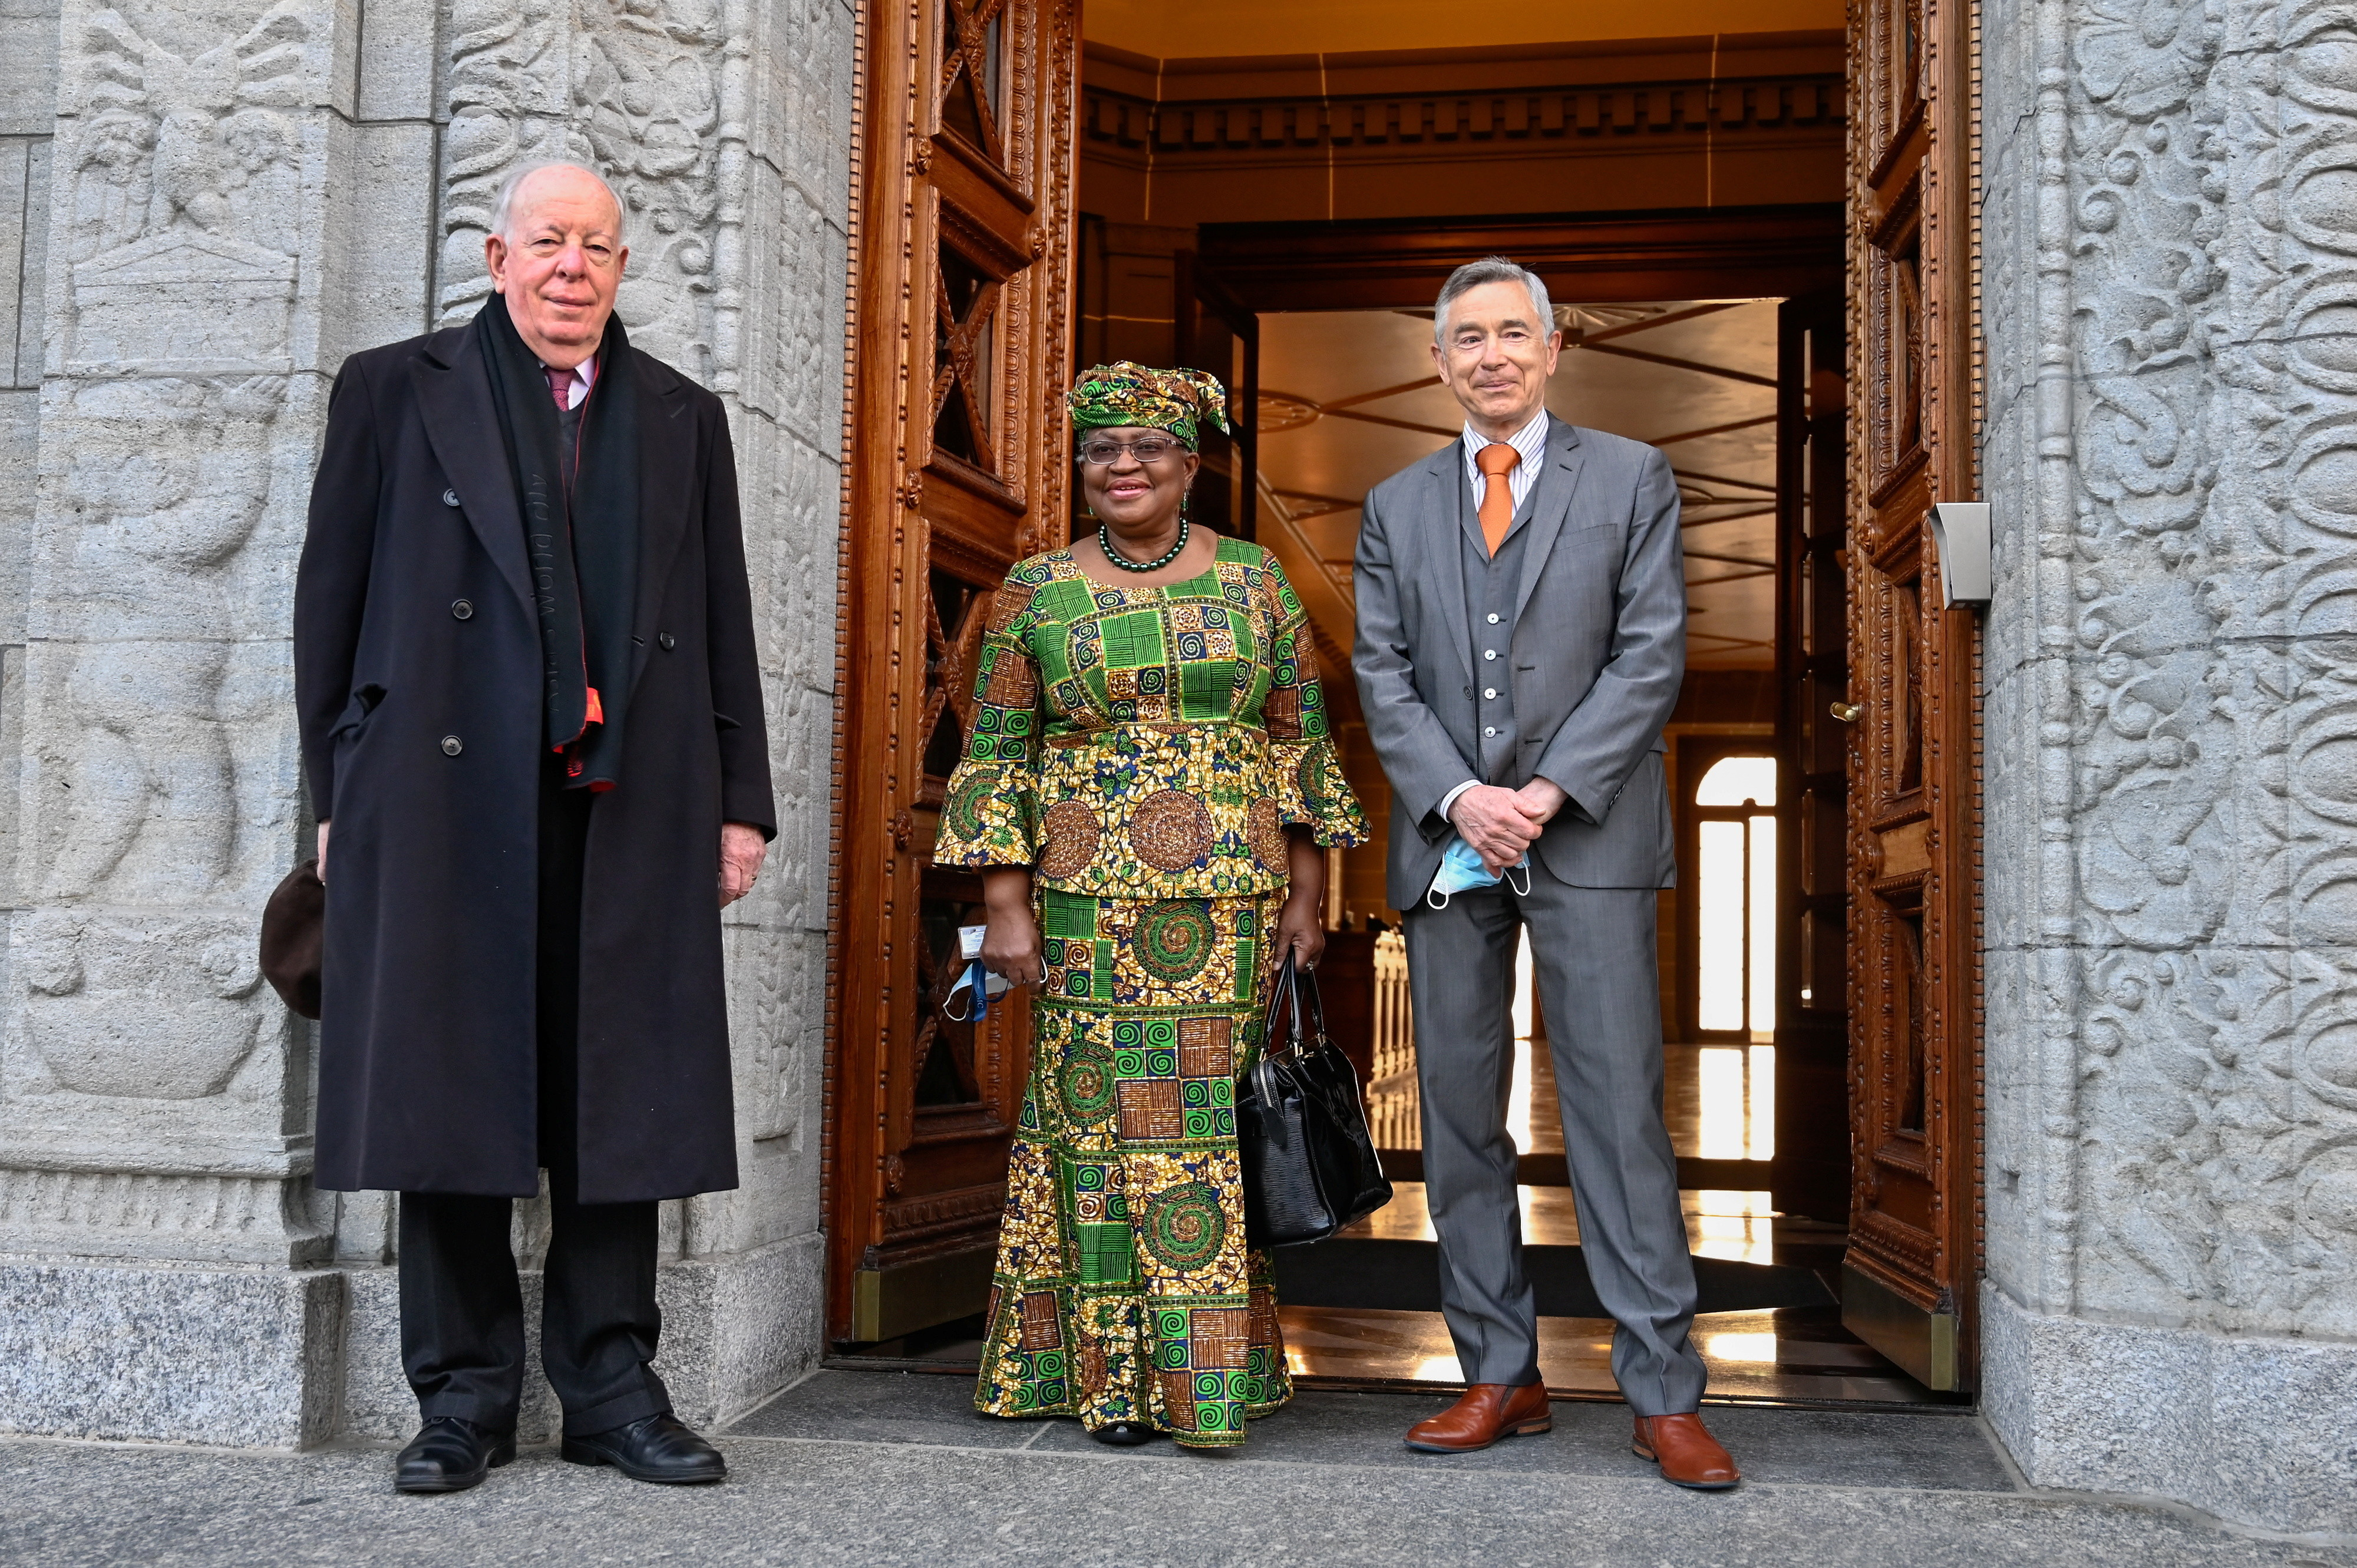 image of new Director-General of the World Trade Organization Ngozi Okonjo-Iweala poses between WTO Deputy Directors-General Alan Wolff (L) and Karl Brauner upon her arrival at the WTO headquarters to take an office in Geneva, Switzerland